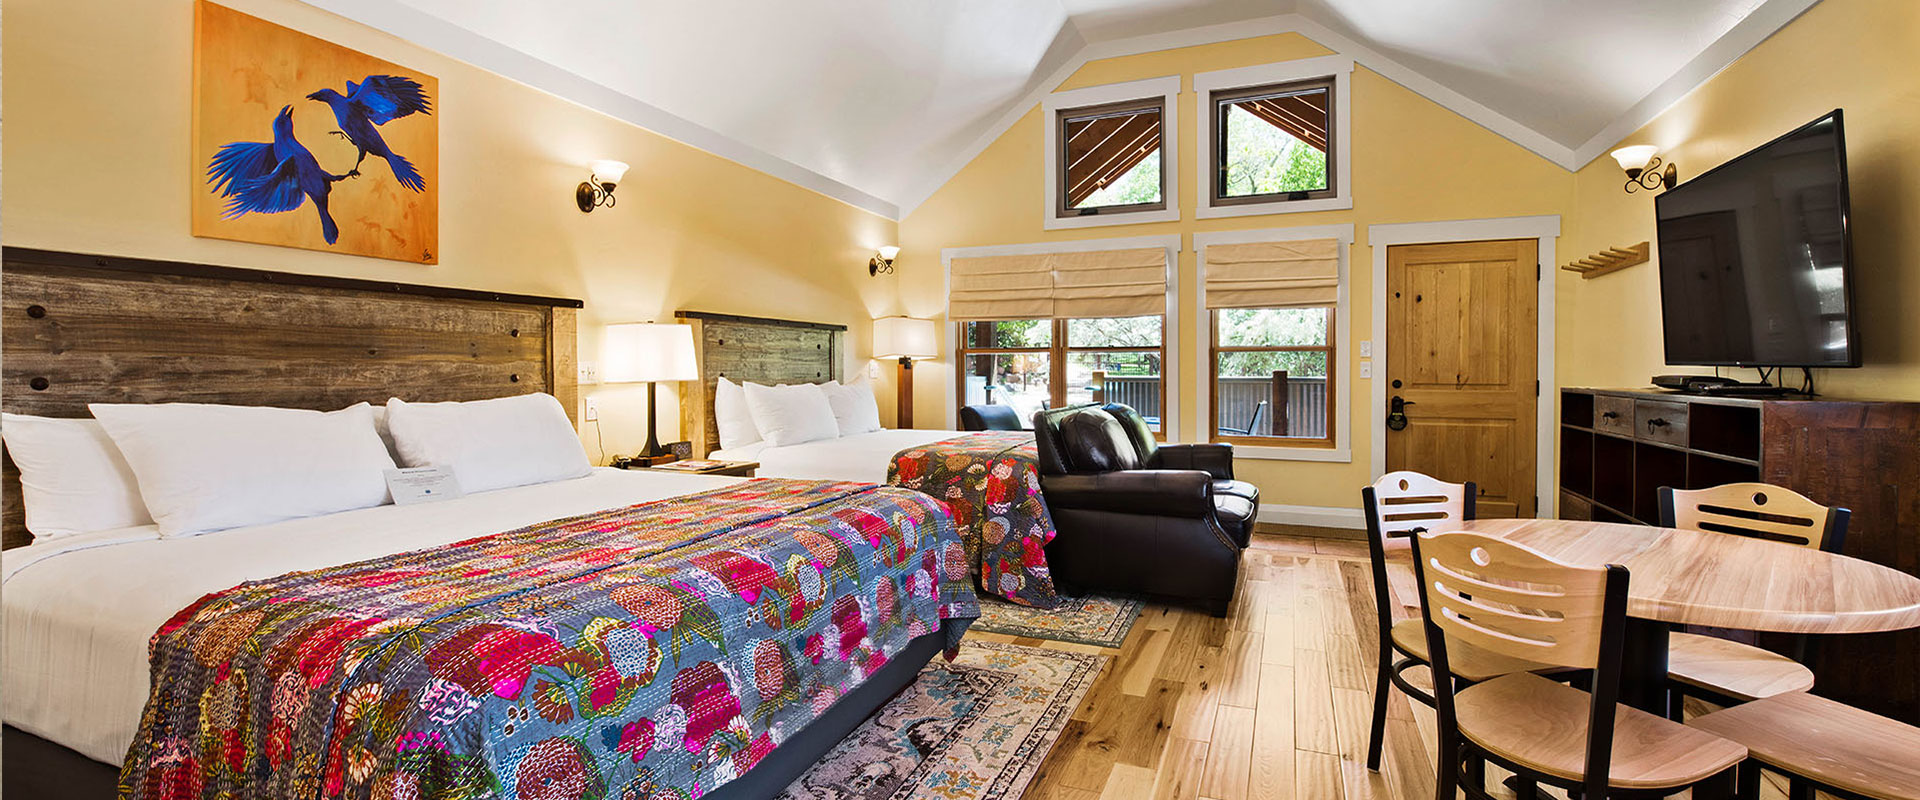 Unit #18 at Moab Springs Ranch features a children's room with a beige wood bunk bed tucked in with multi-colored covers and a turquoise blue shelf stocked with extra bed linen.